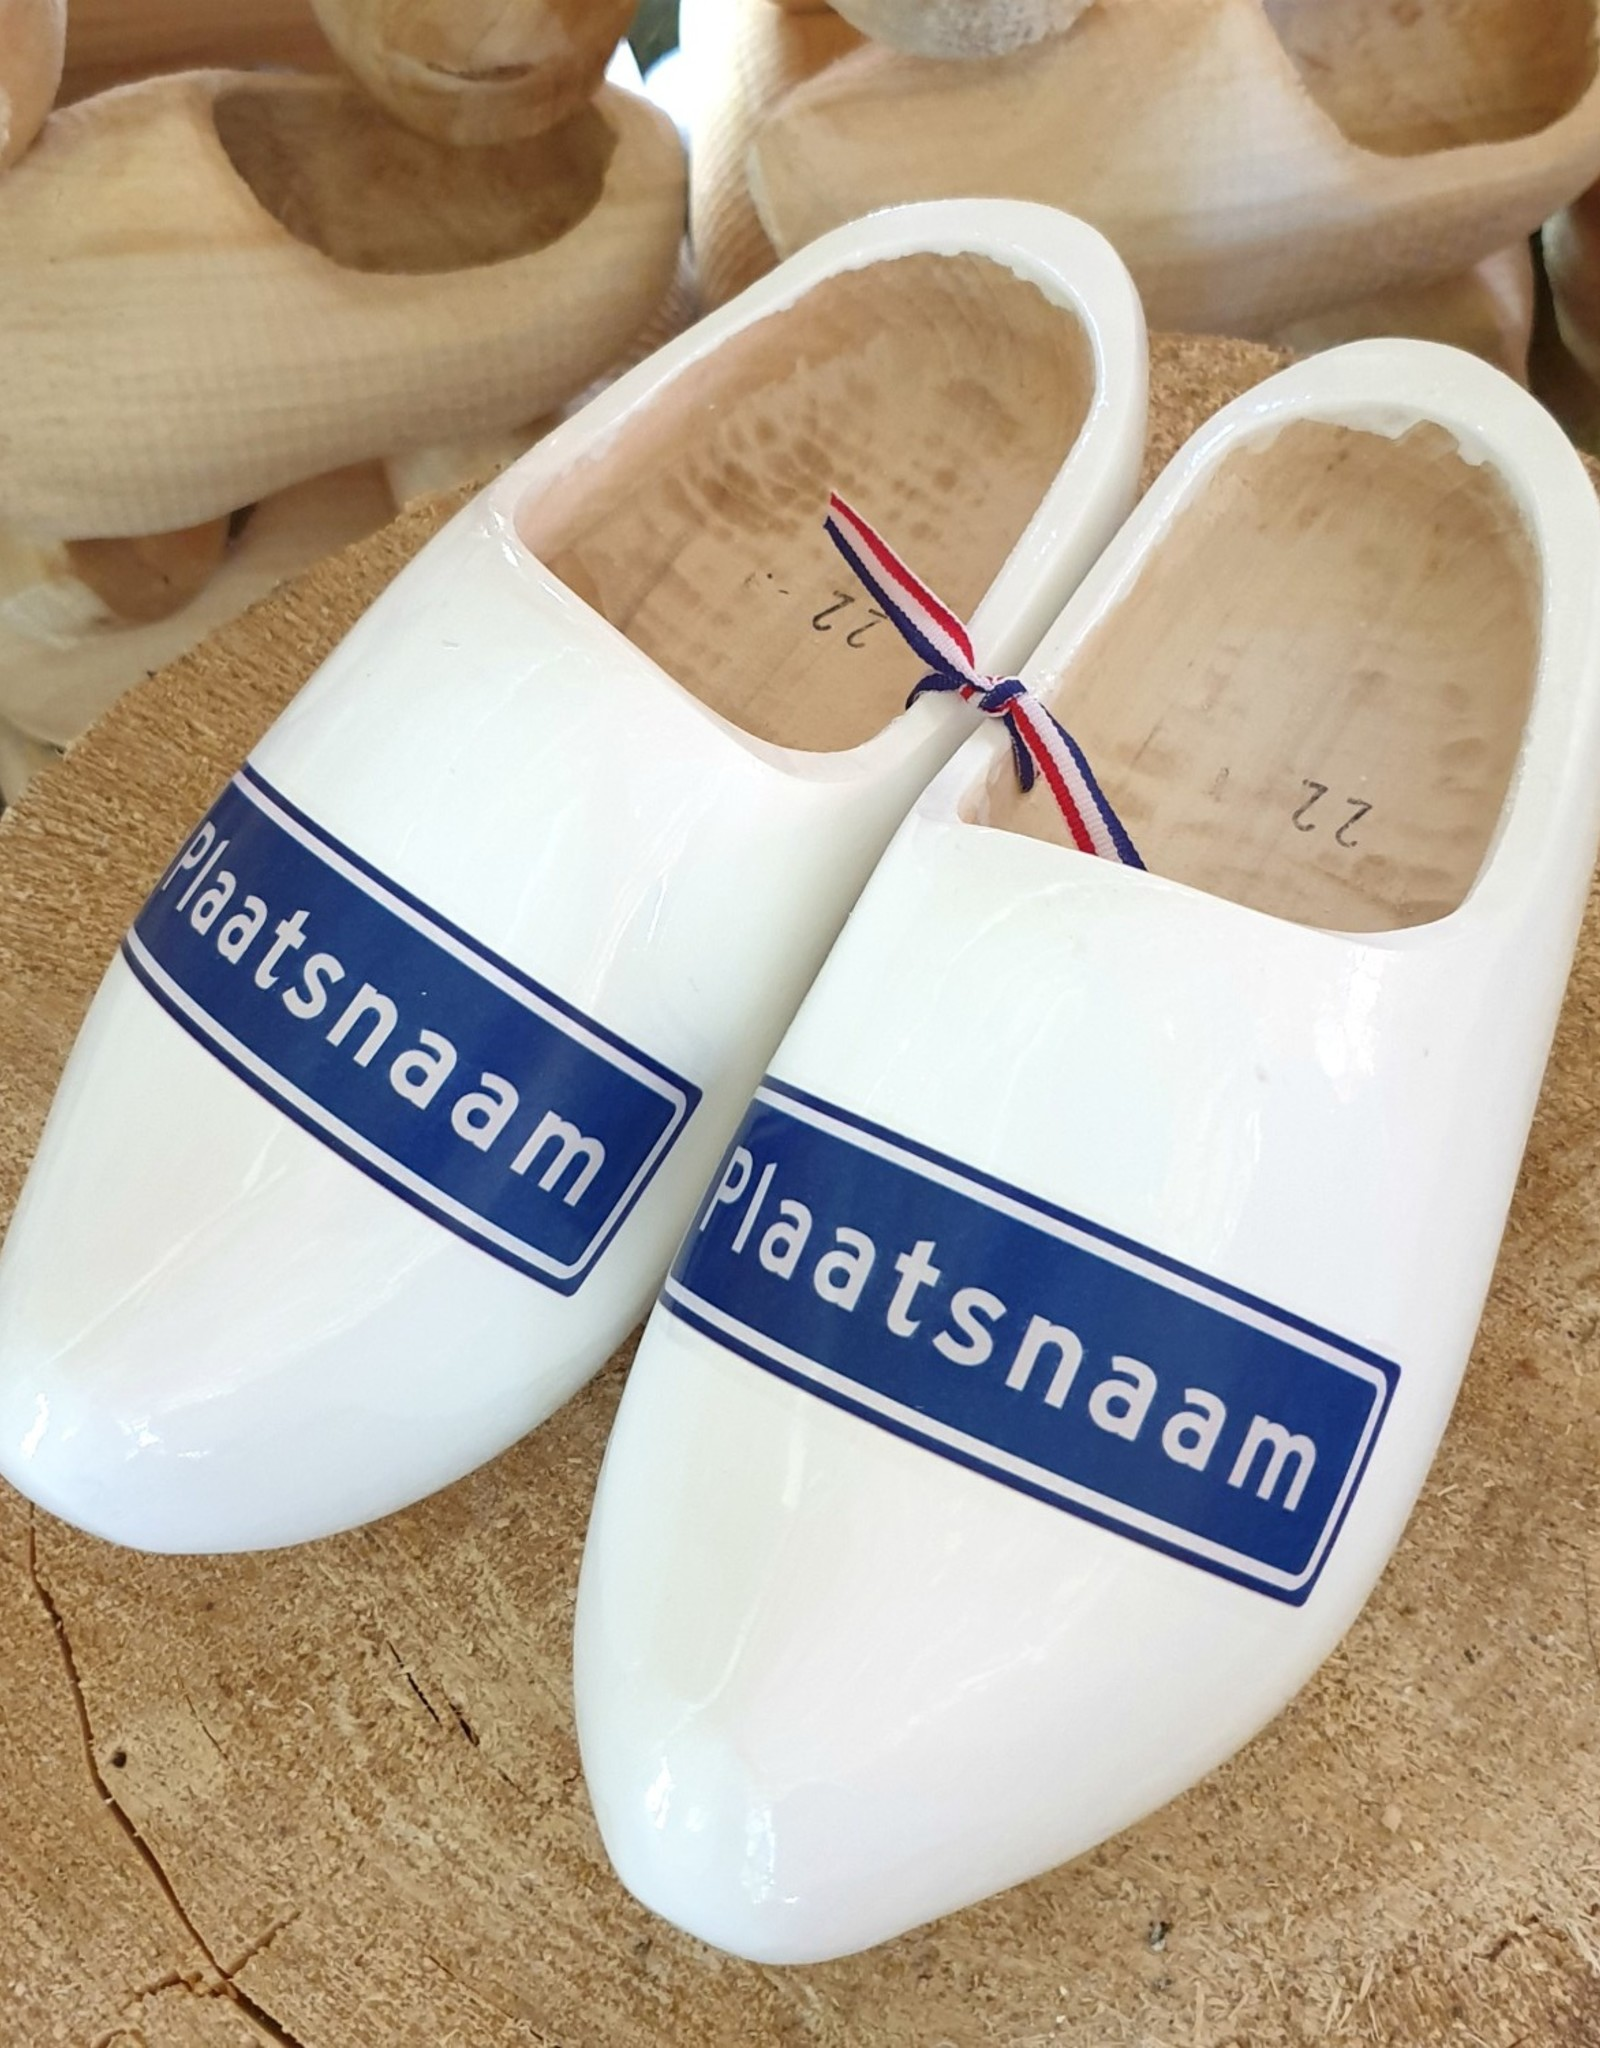 Wilhelmus Woodenshoes with your city name